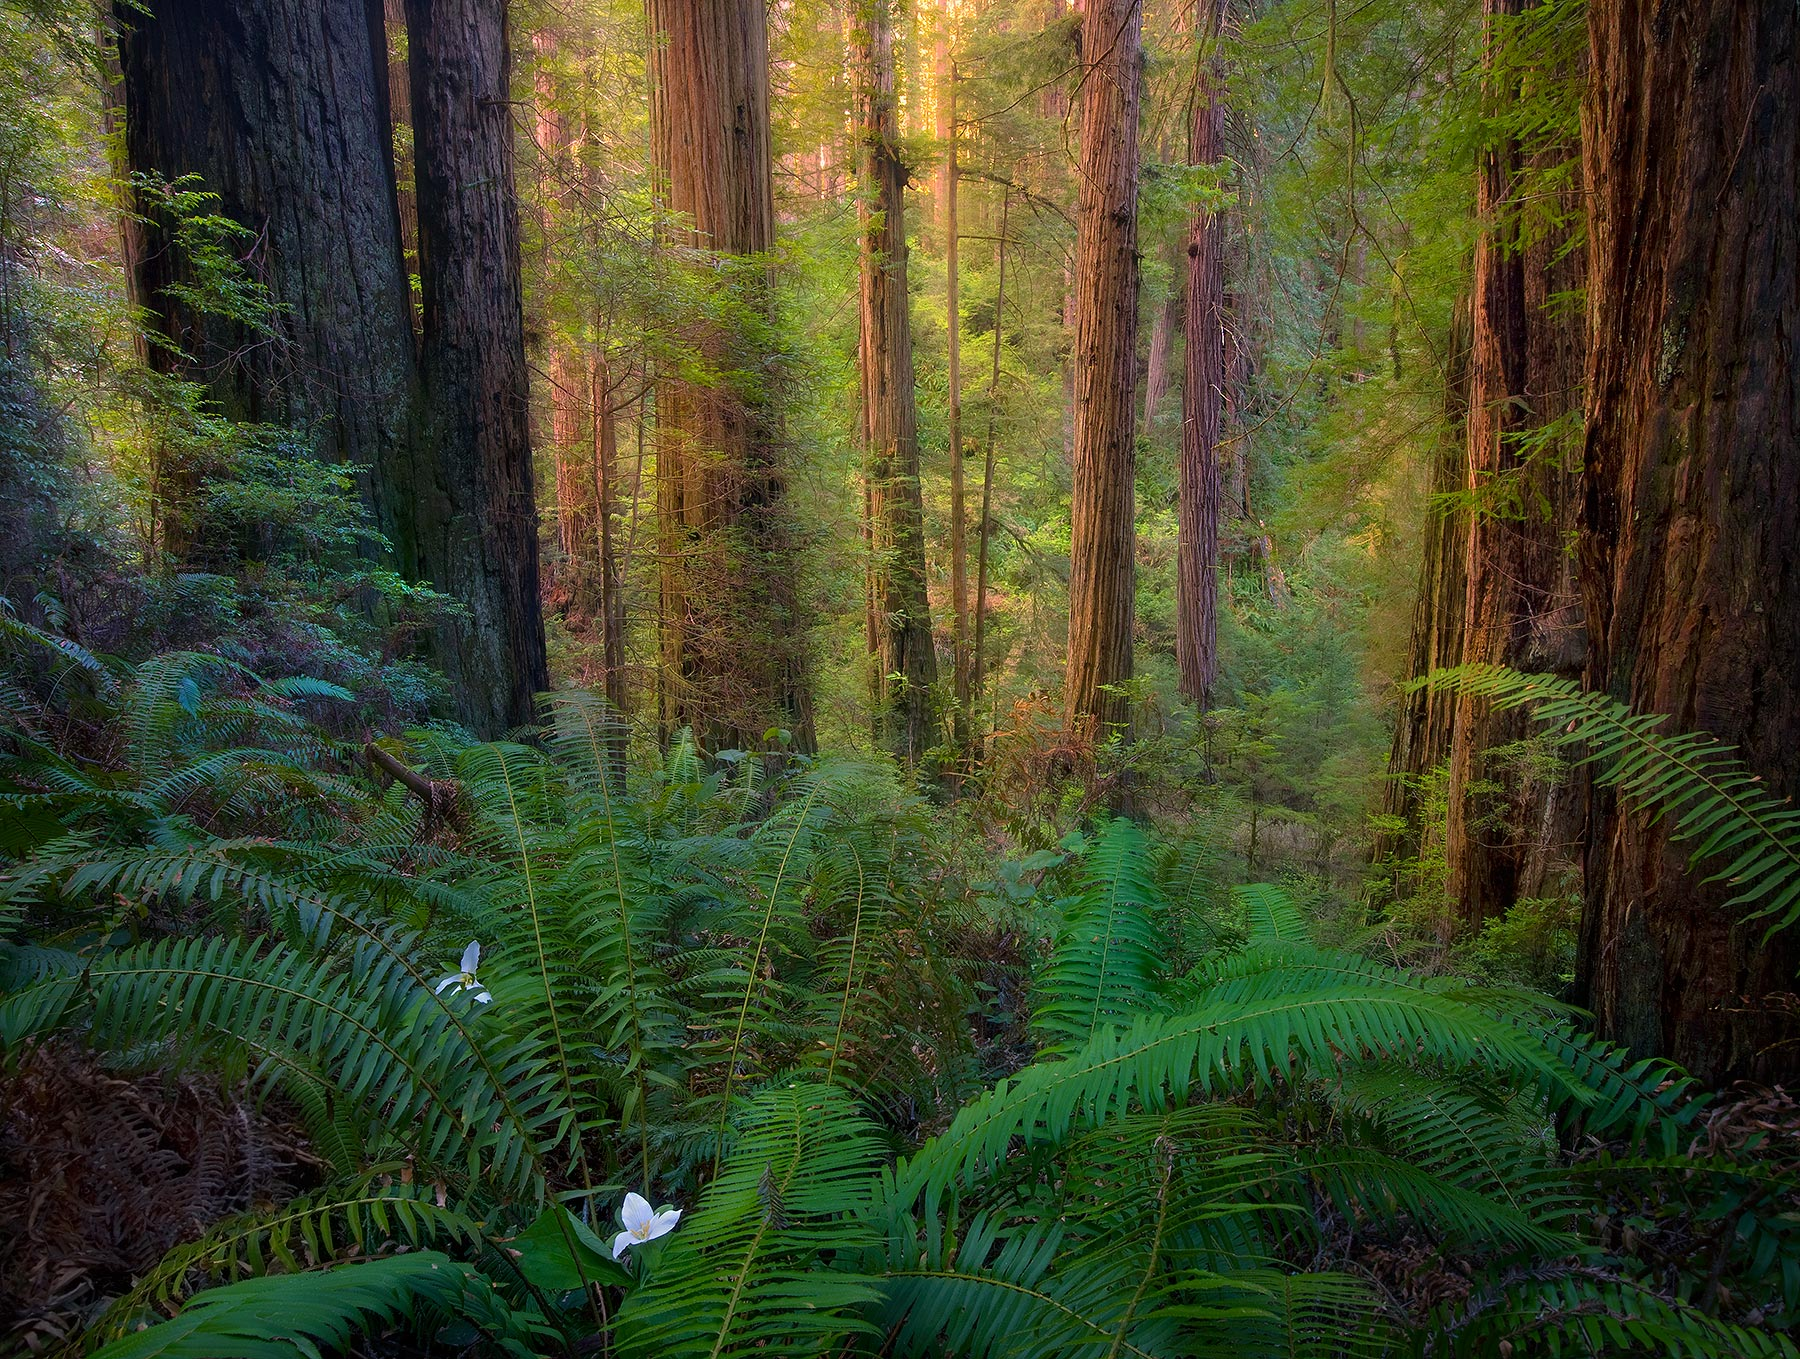 california, del norte, redwood, state park, ancient, old-growth, forest, morning, photo